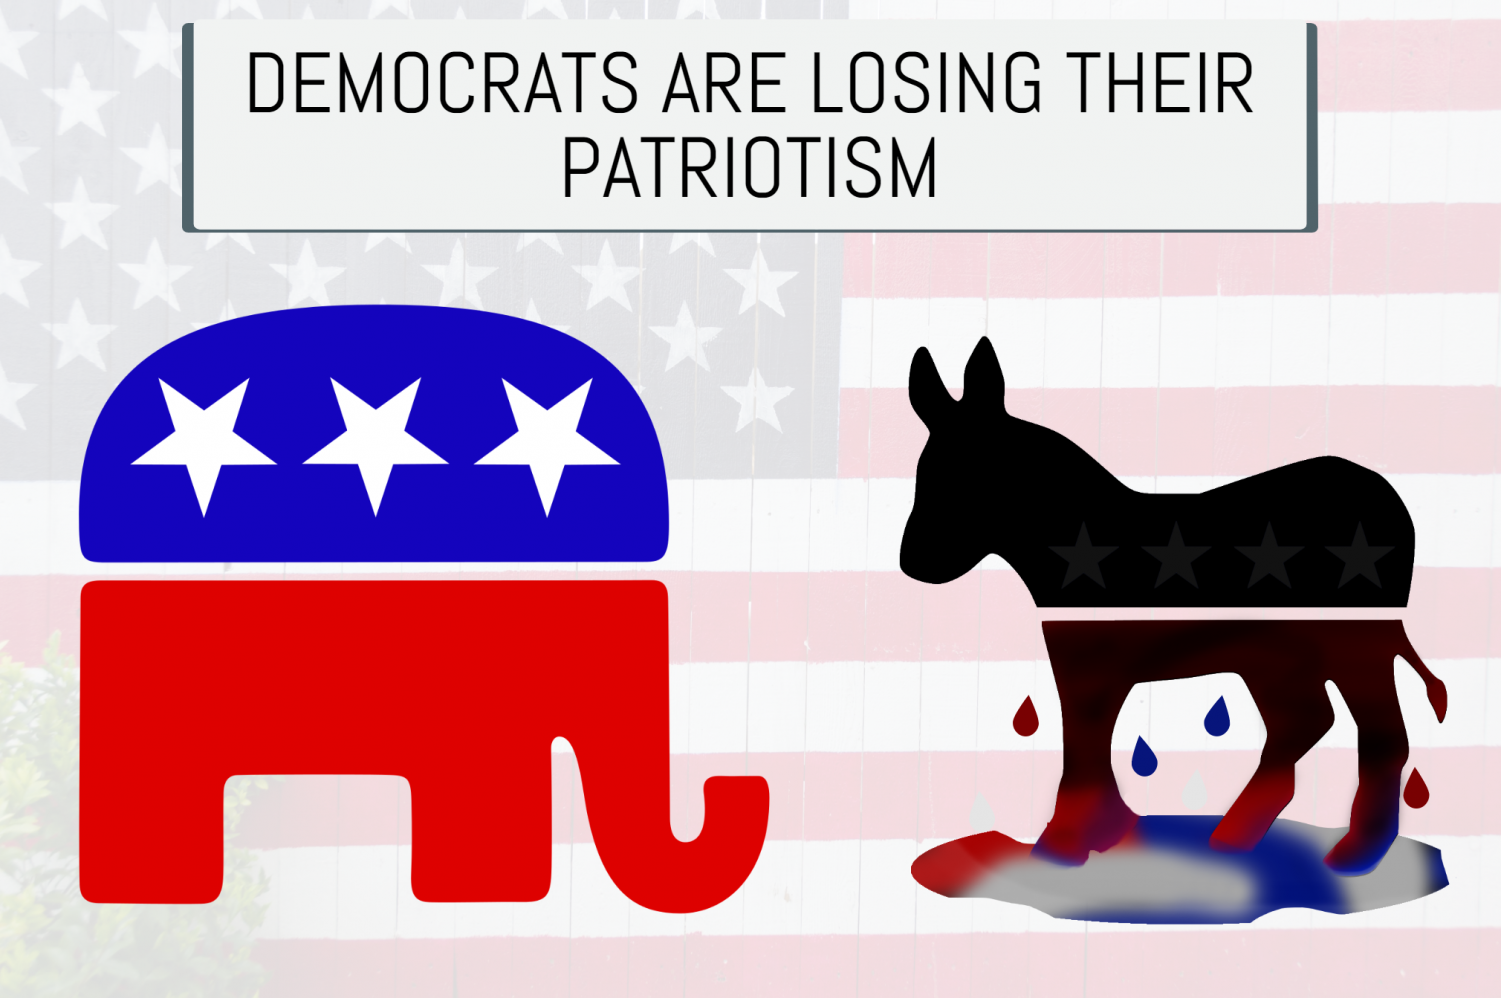 For me, being patriotic has never been an inherently conservative value.